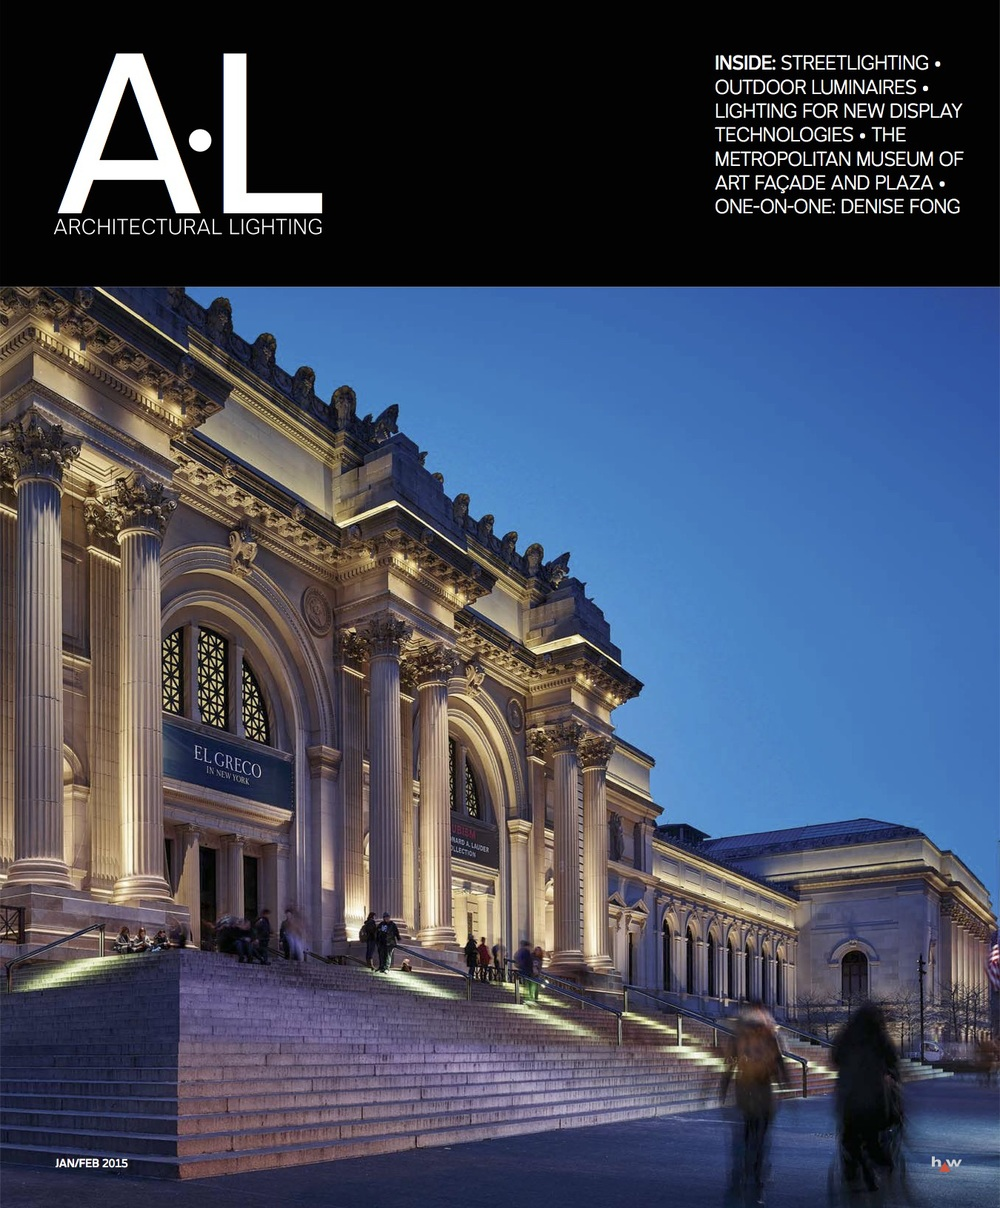 Jan/Feb 2015 cover of Architectural Lighting. Photo: Matthew Carbone